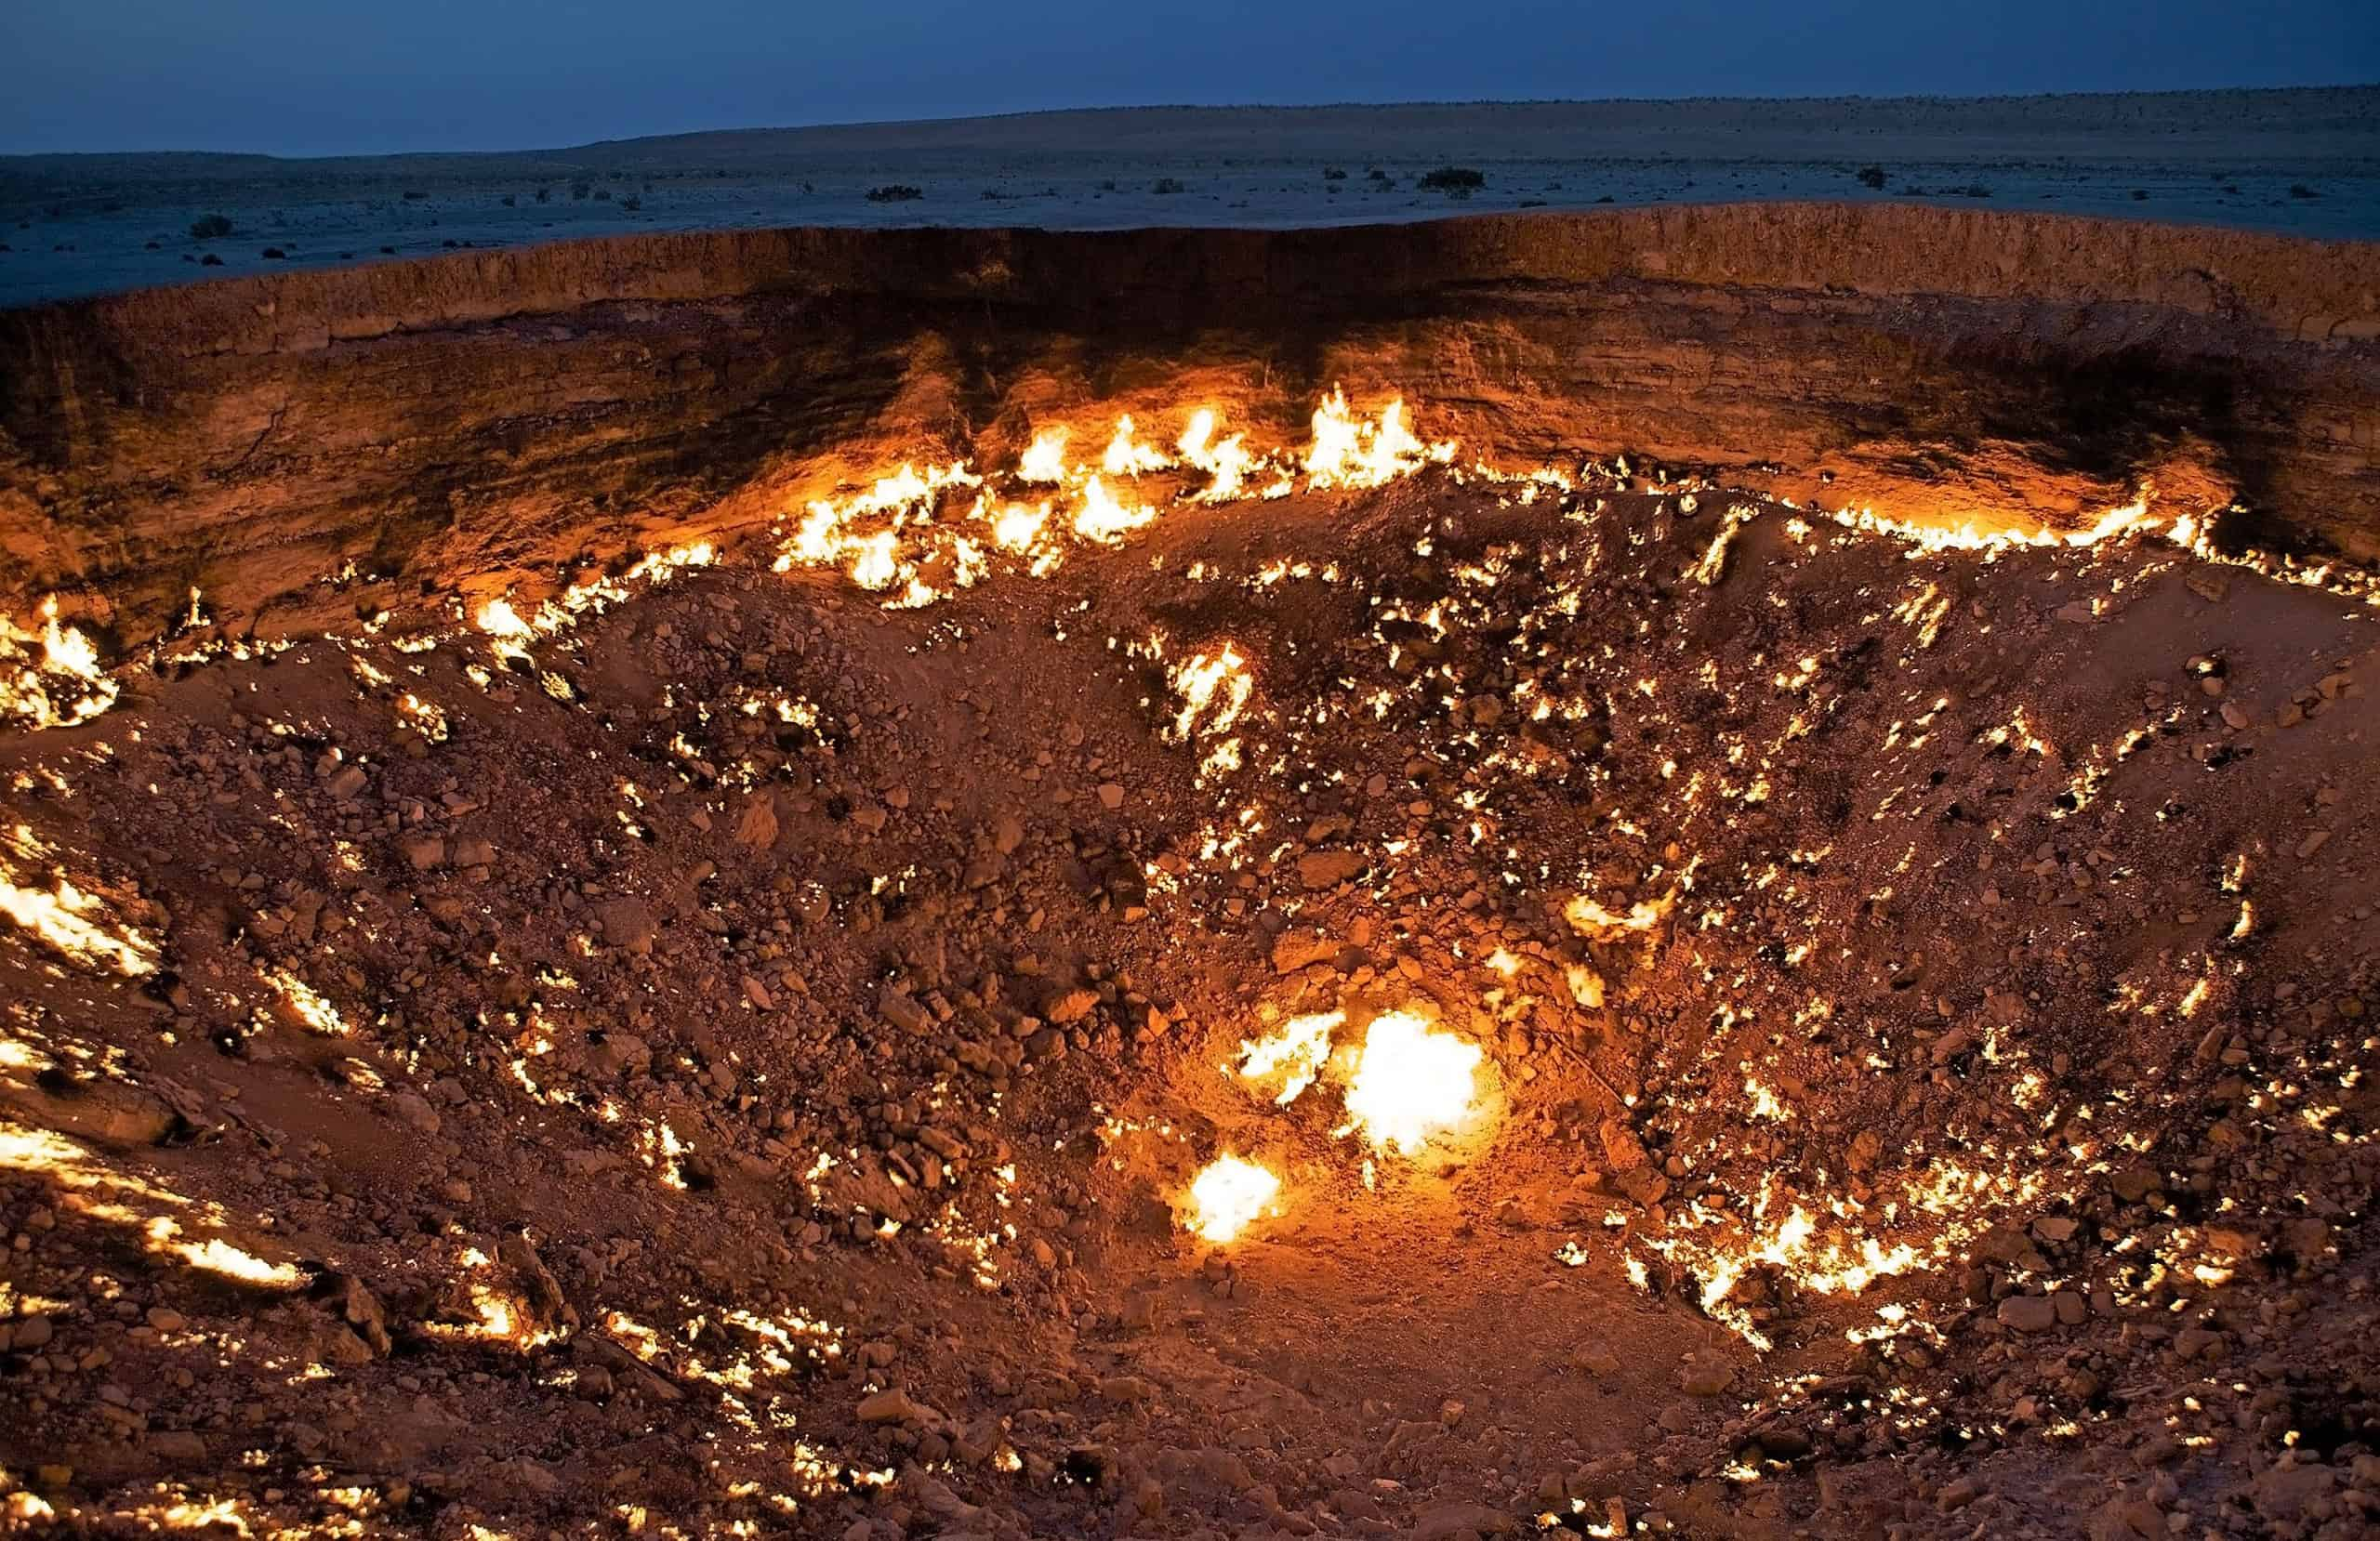 Door to Hell, Derweze, Turkmenistan. Door to Hell is a natural gas field in the Ahal Province. It is noted for its natural gas fire which has been burning continuously since it was lit by Soviet petrochemical engineers in 1971, in the middle of Karakum desert. Few foreigners have seen the crater and Tourism officials say the Door to Hell could developed into a key draw for adventure tourist. The site was identified in 1971. It was a oil field site. The engineers set up a drilling rig and camp nearby and started drilling operations. The ground beneath the drilling rig and camp collapsed into a wide crater and disappeared. No lives were lost in the incident.